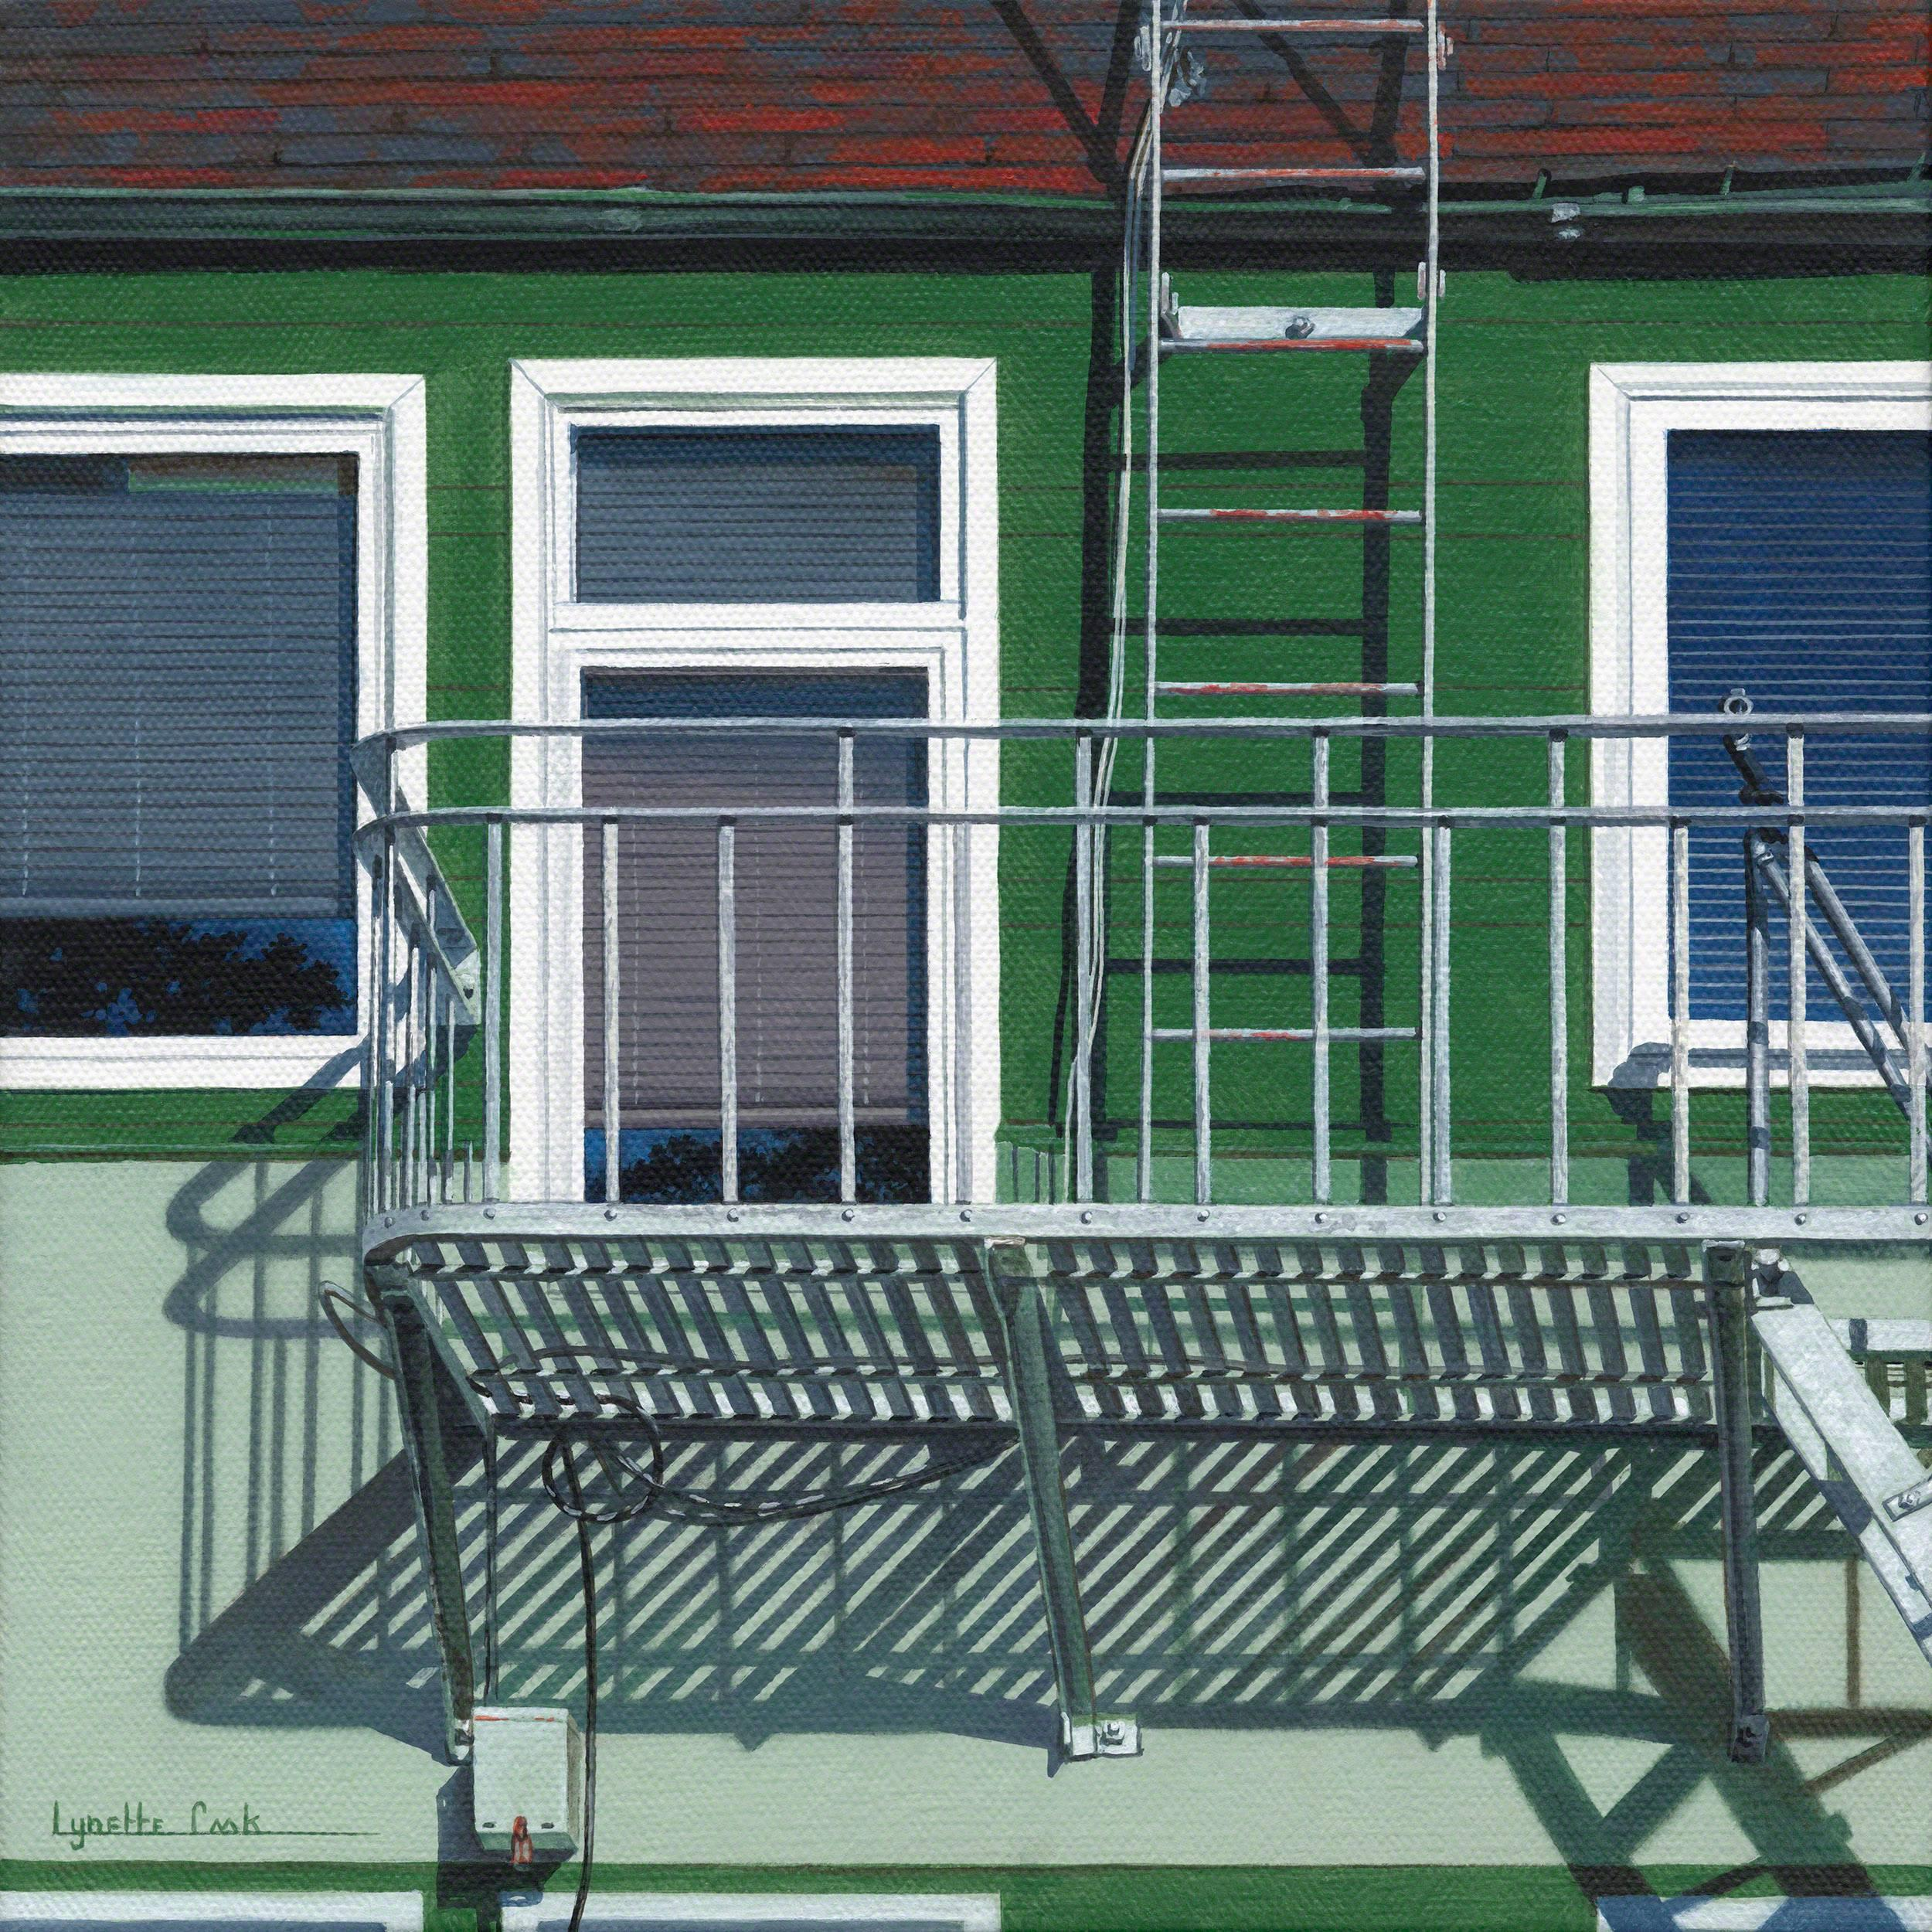 Up to the Roof / framed contemporary photorealist architecture painting